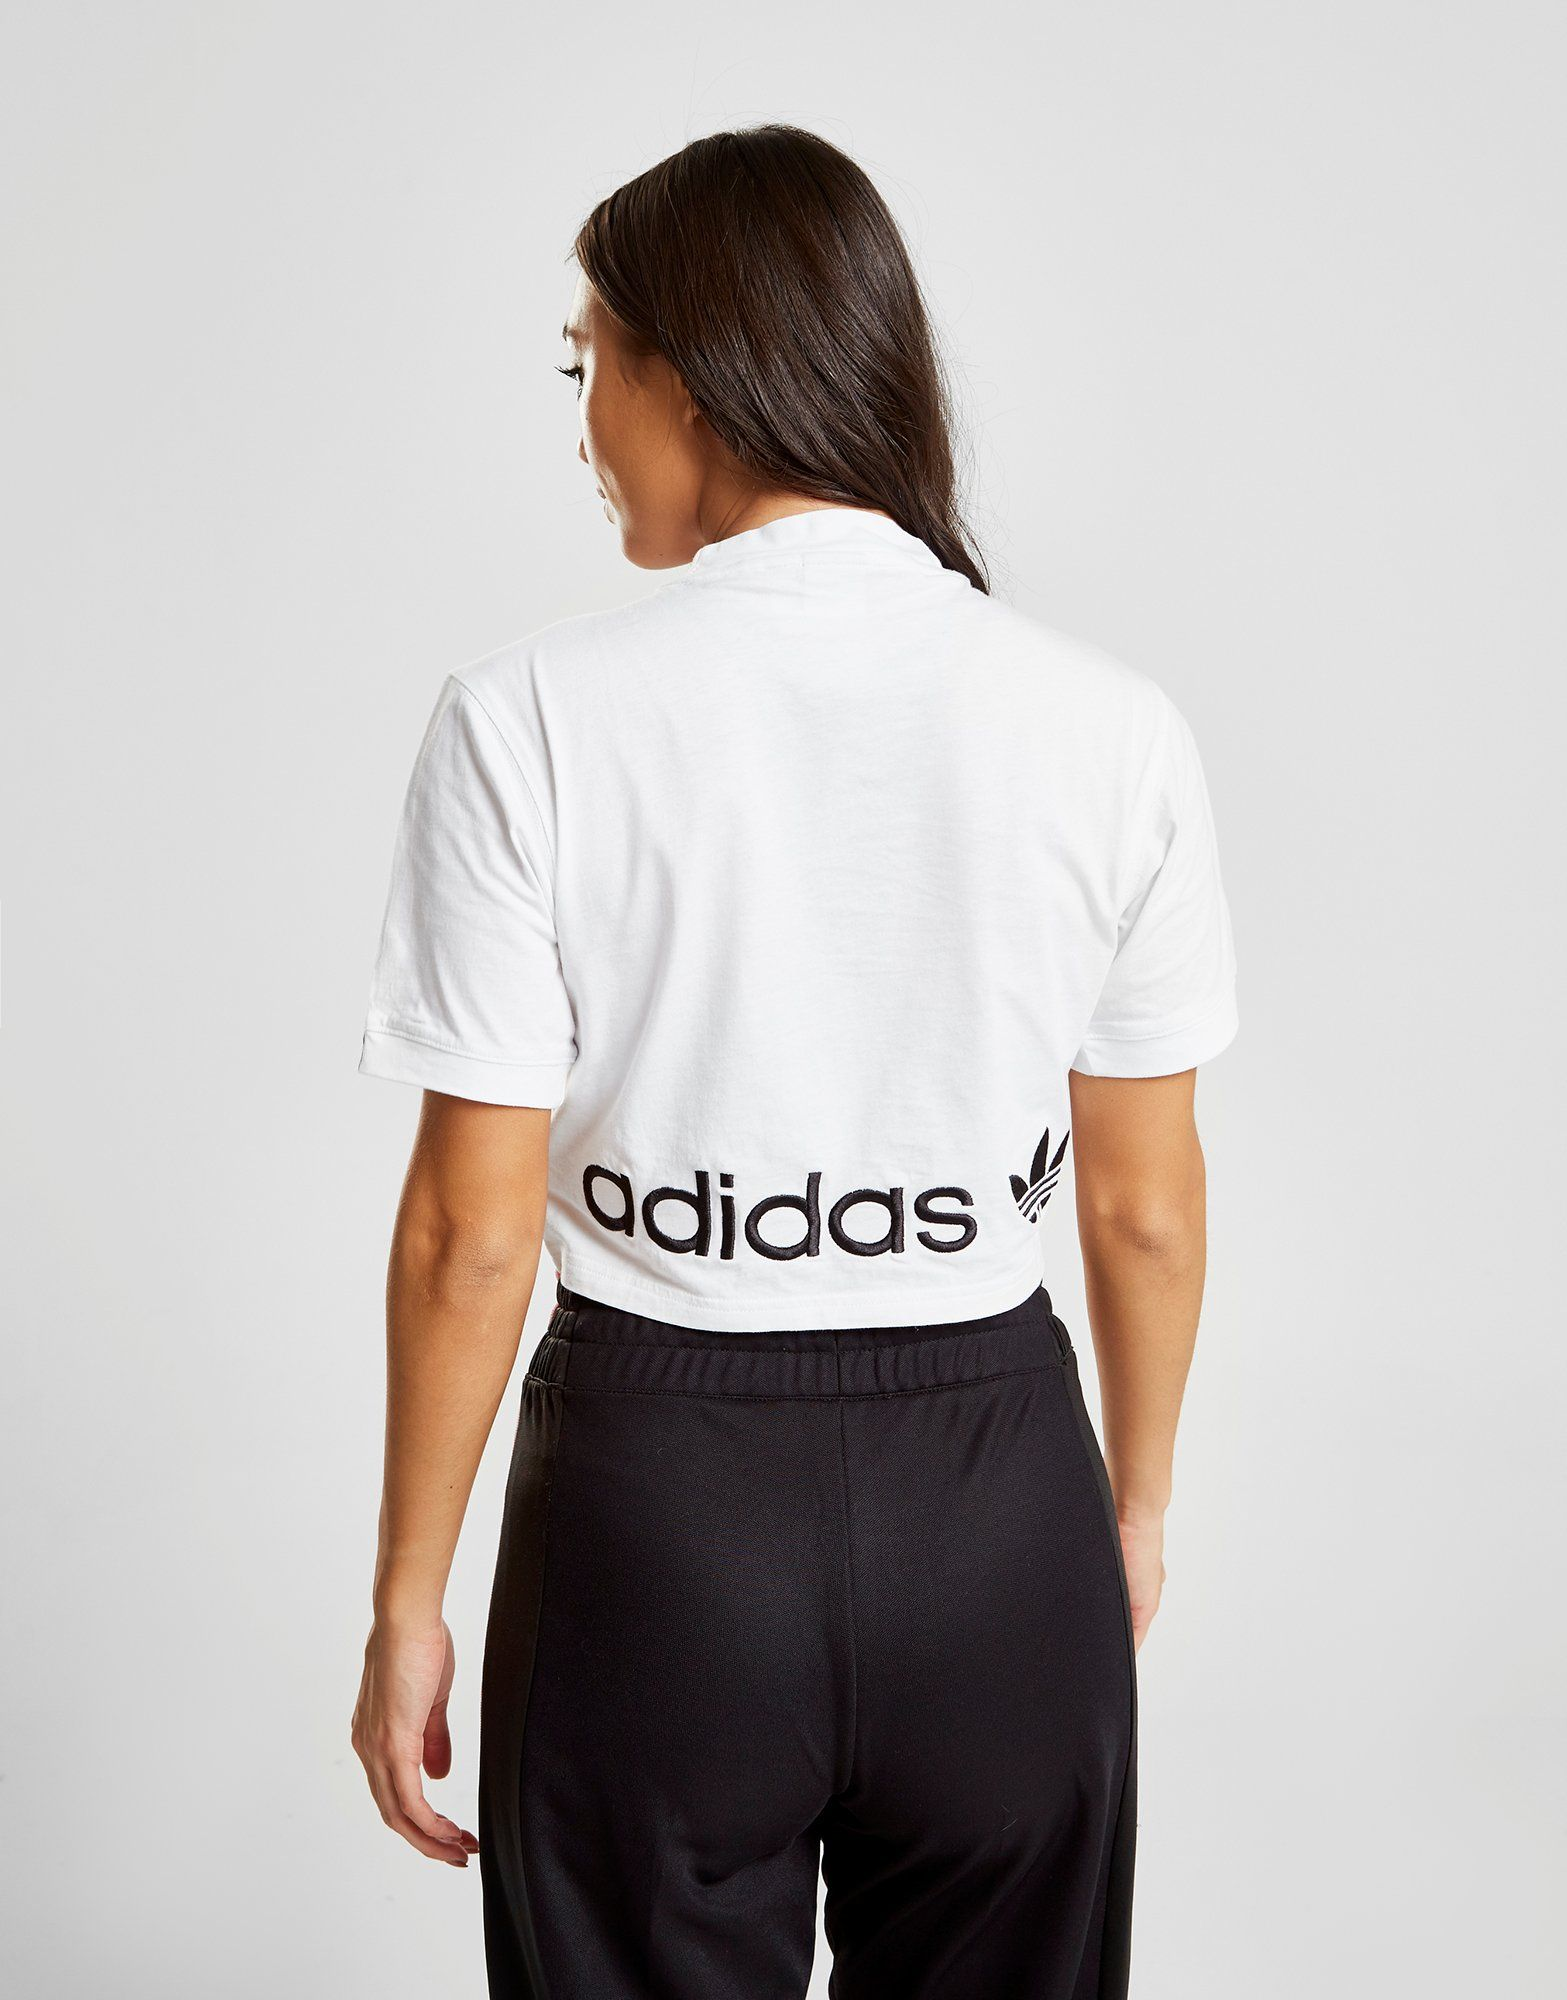 adidas Originals T-shirt Coeeze Ruche Femme